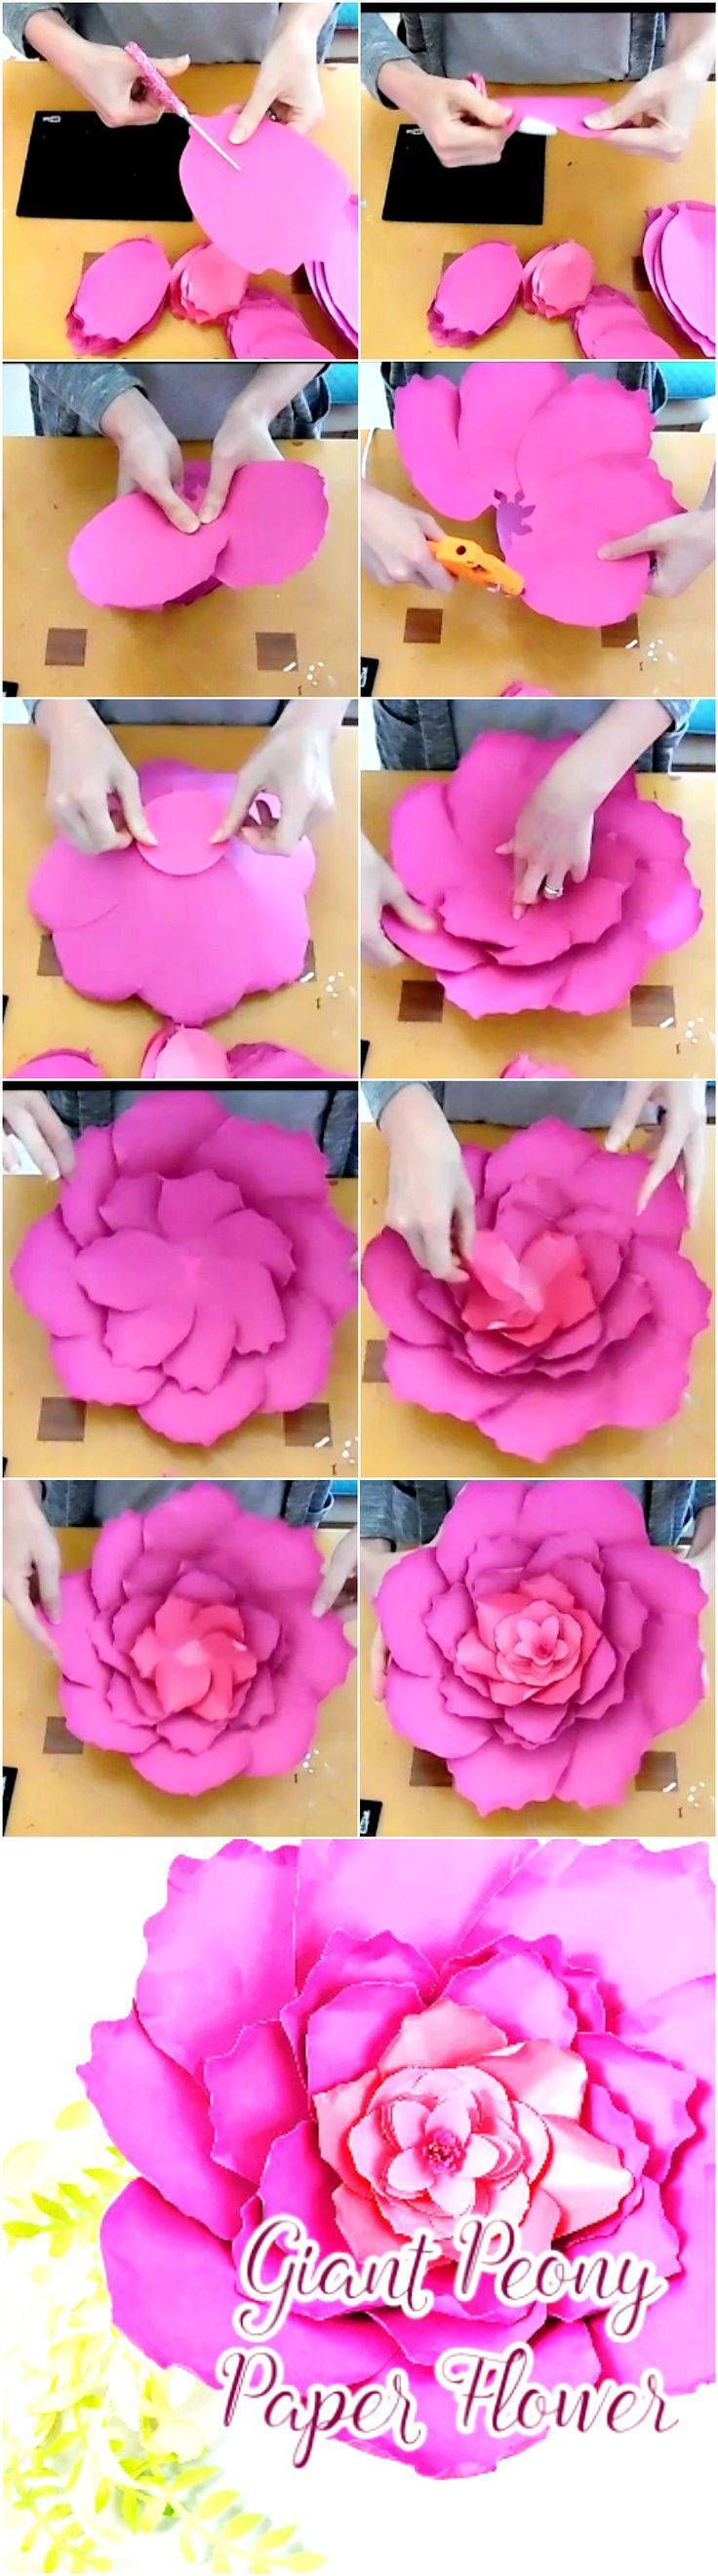 Giant Peony, Paper Flower Templates And Tutorials Paper Flower Patterns  Diy…